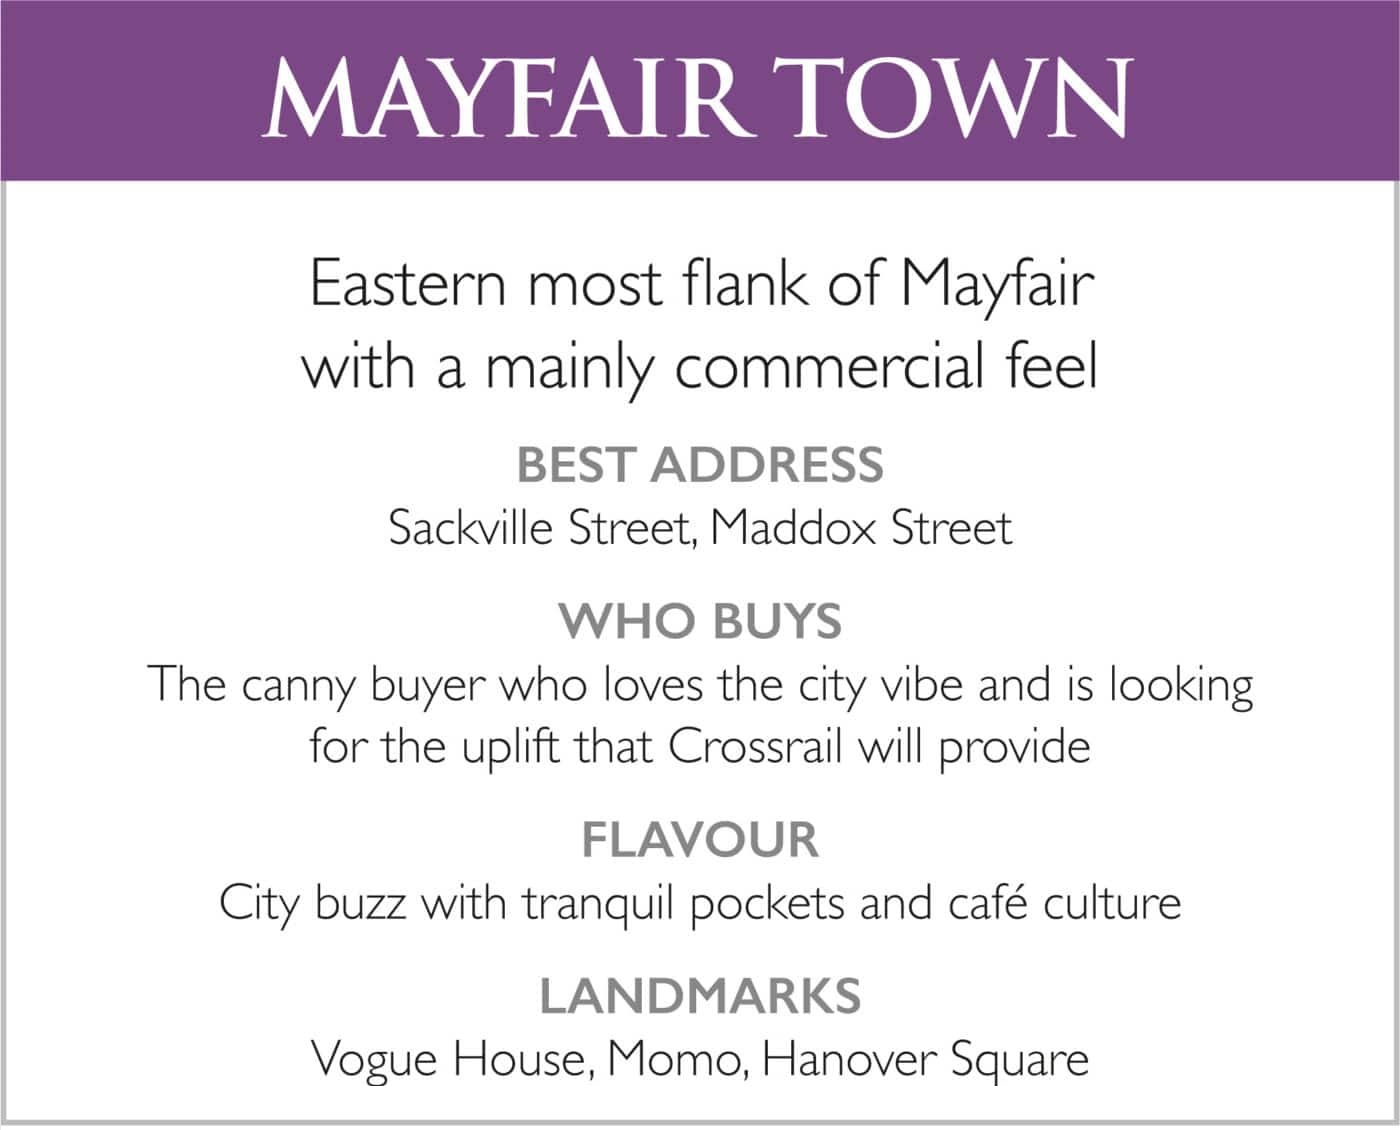 Mayfair Town List of Features